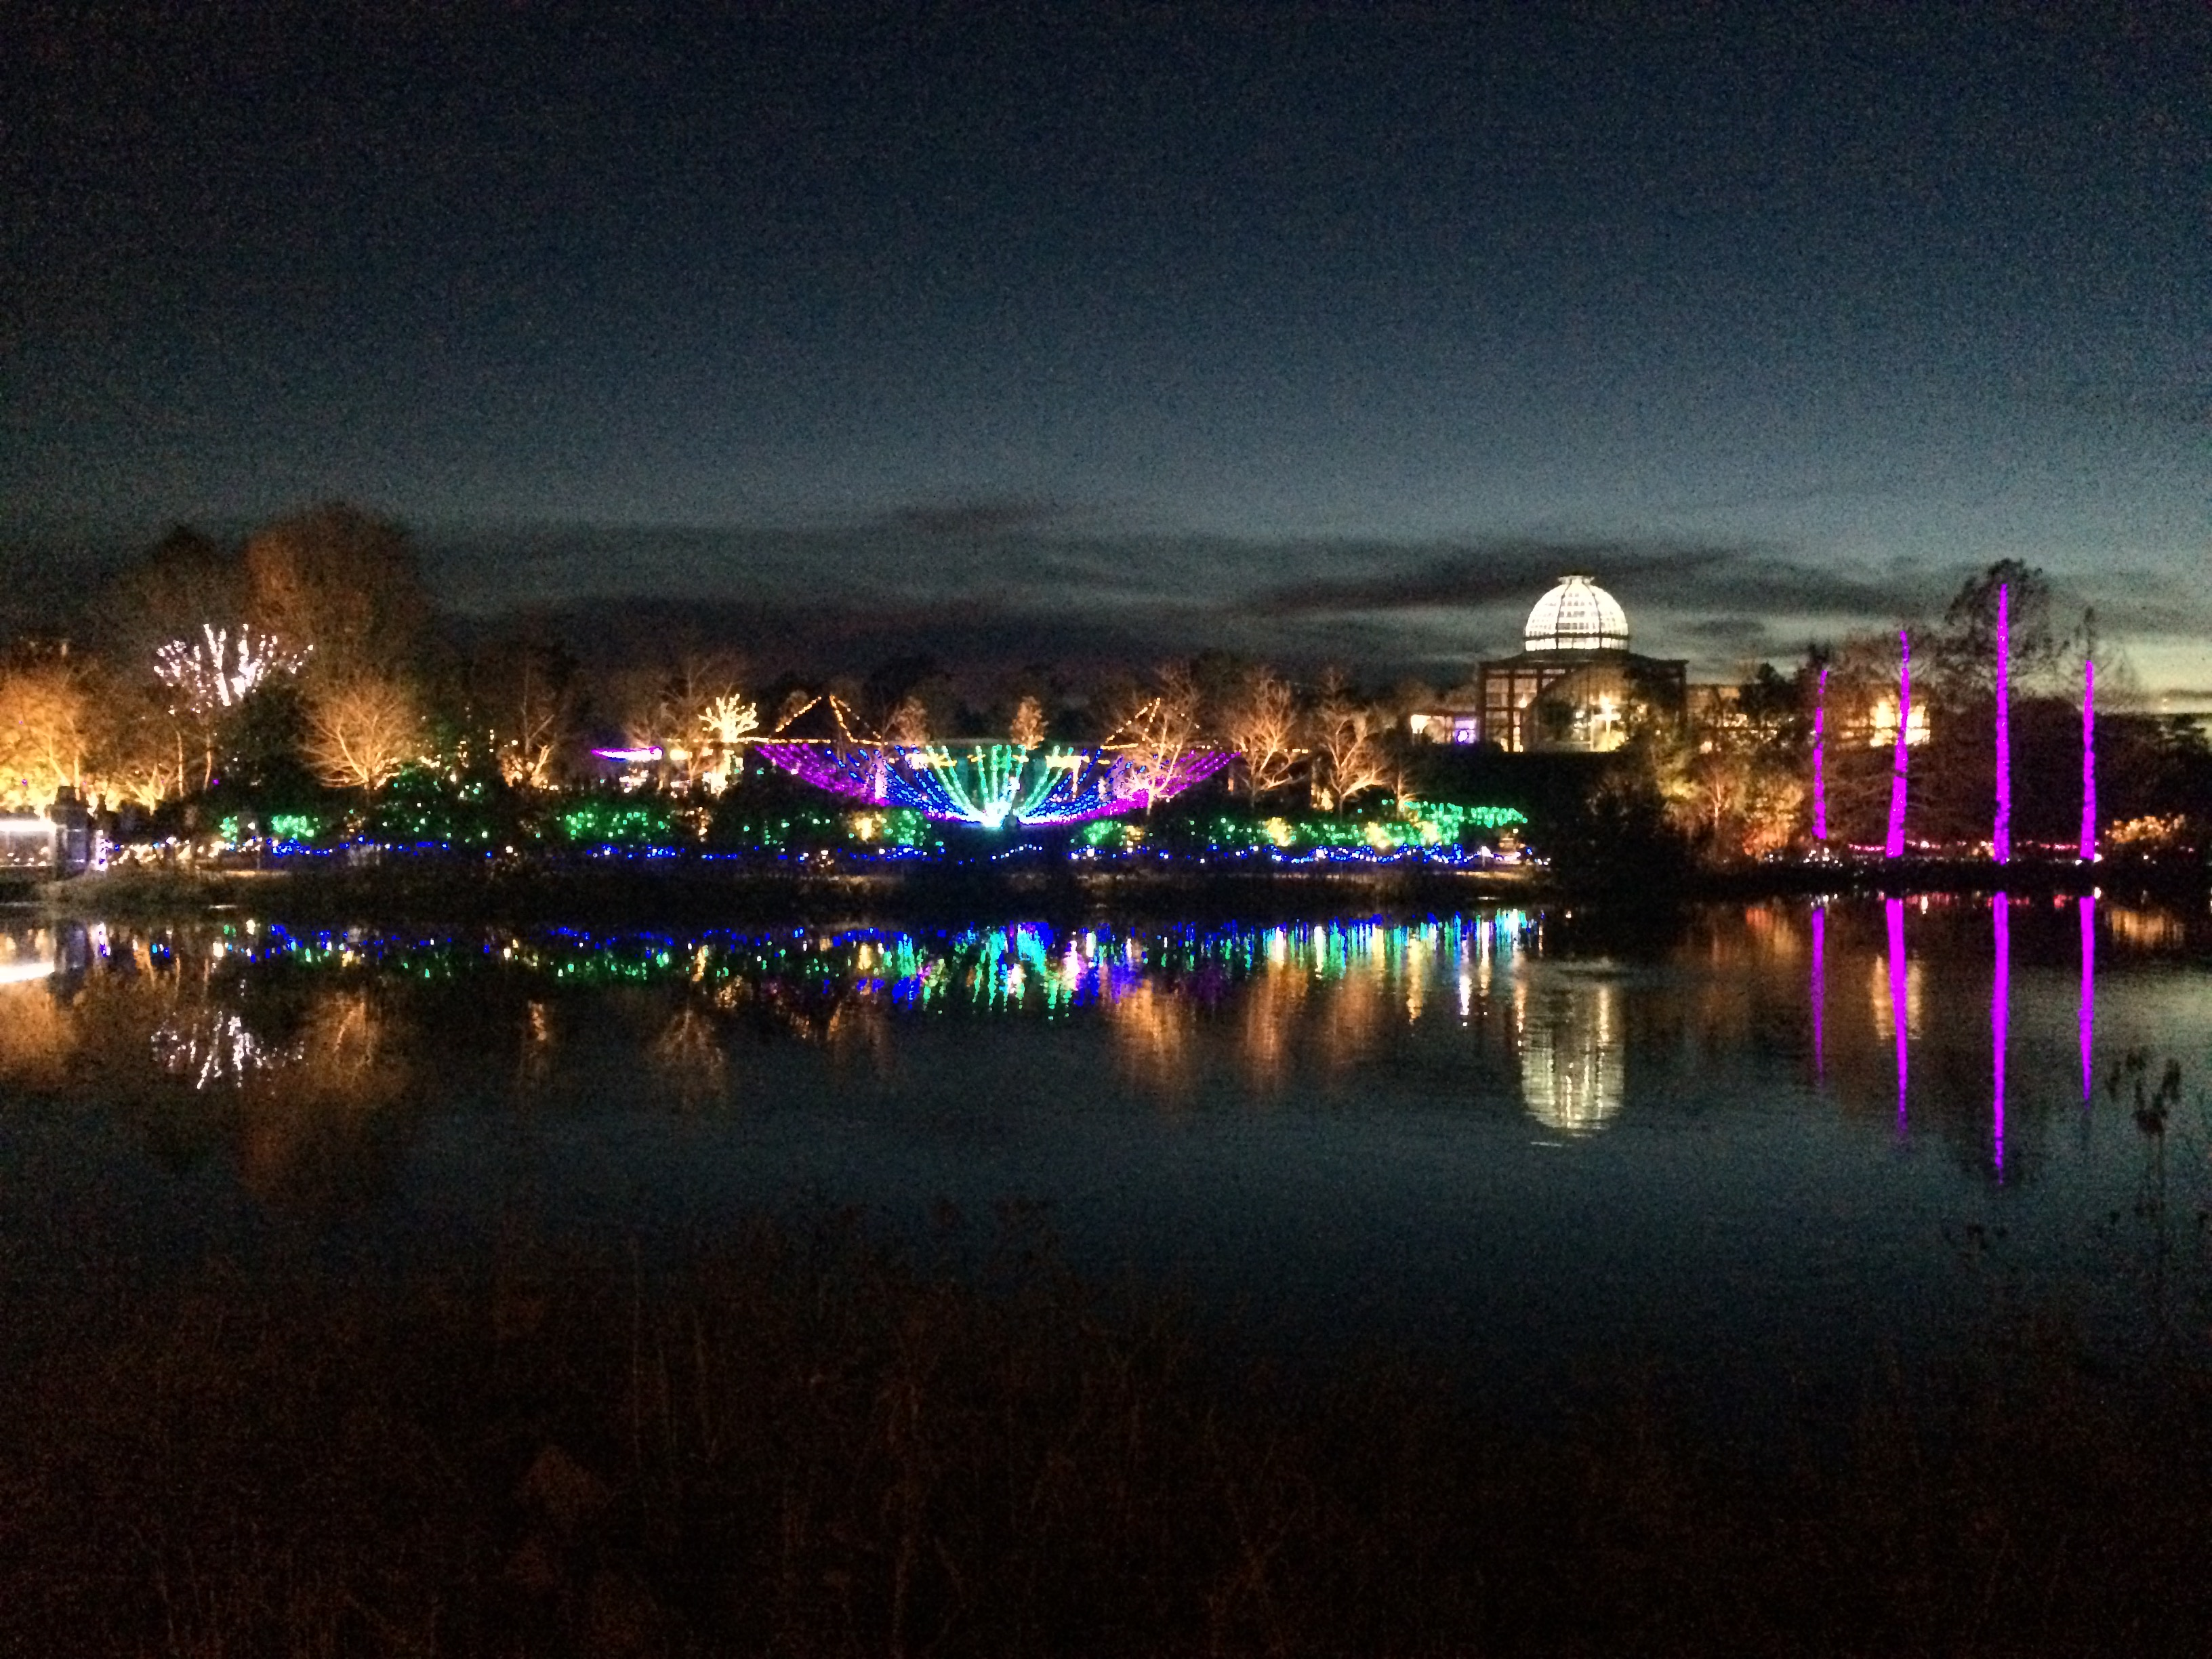 Holiday Lights at Lewis Ginter Botanical Gardens - Miss Smarty Plants